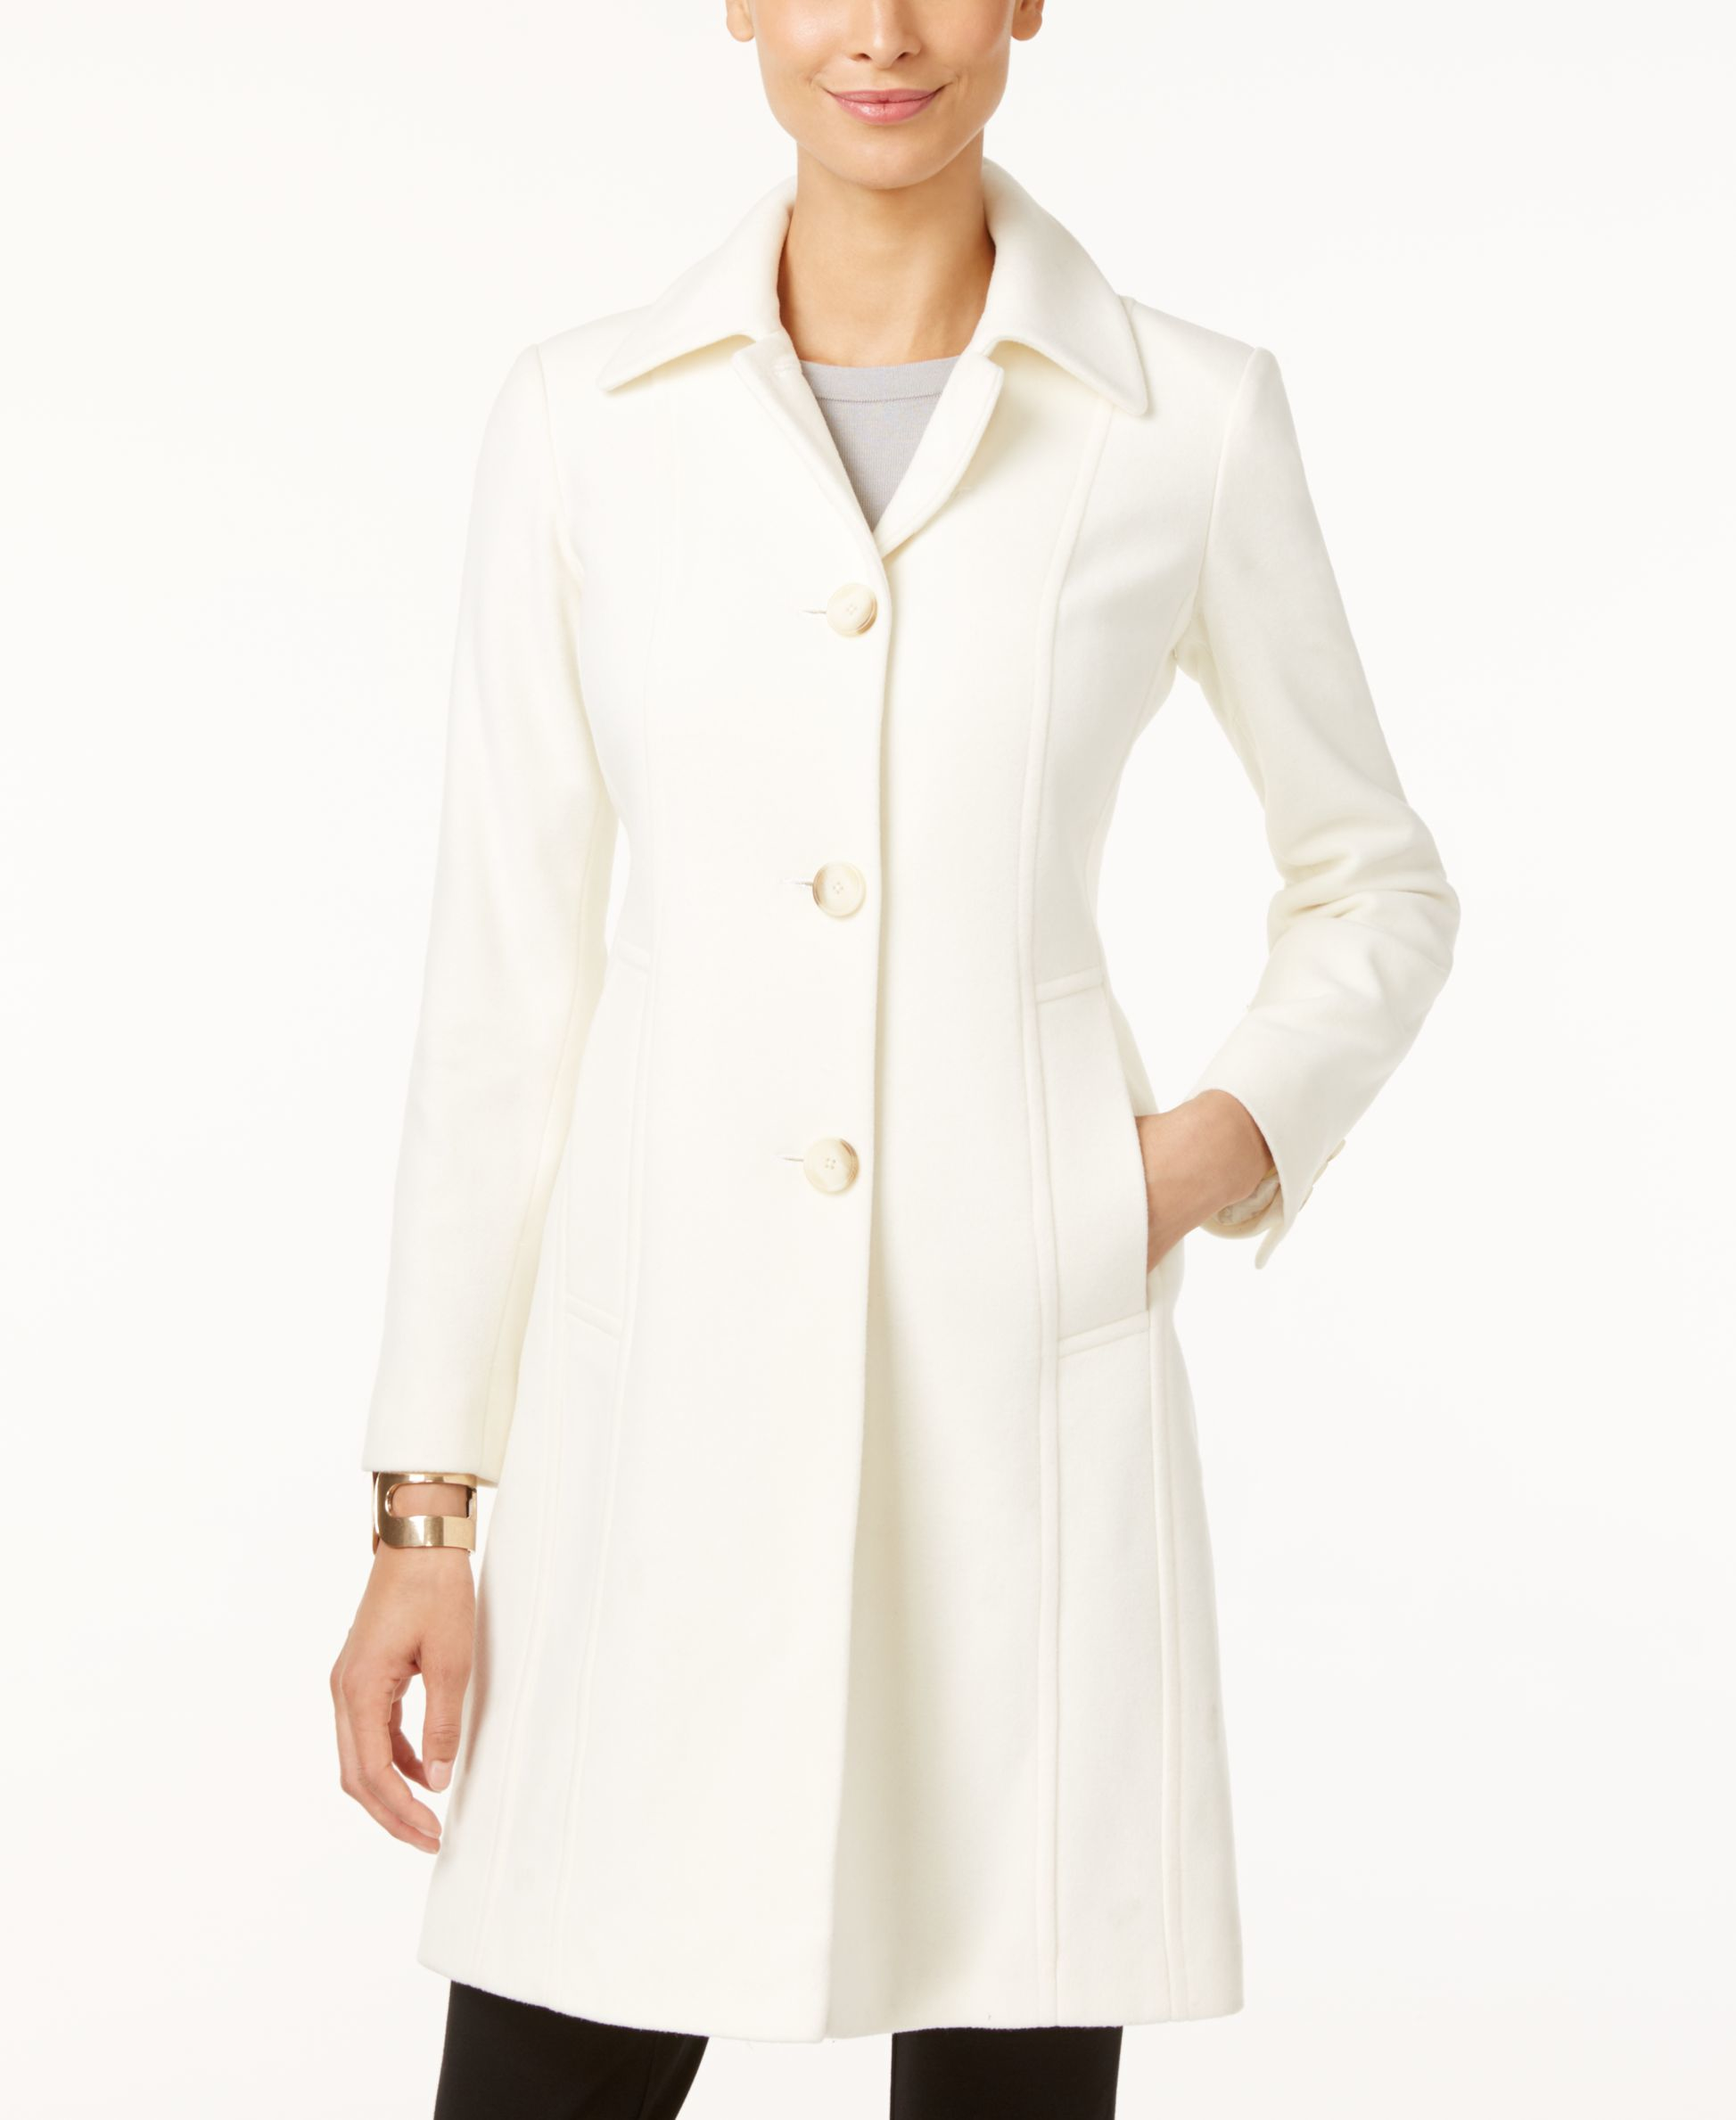 3/4-Length Wool-Blend Coat: This classic coat is sure to handle whatever the weather brings your way. Our single-breasted, button-front coat is warm and seamed for a sophisticated shape. Our single-breasted, button-front coat is warm and seamed for a sophisticated shape.